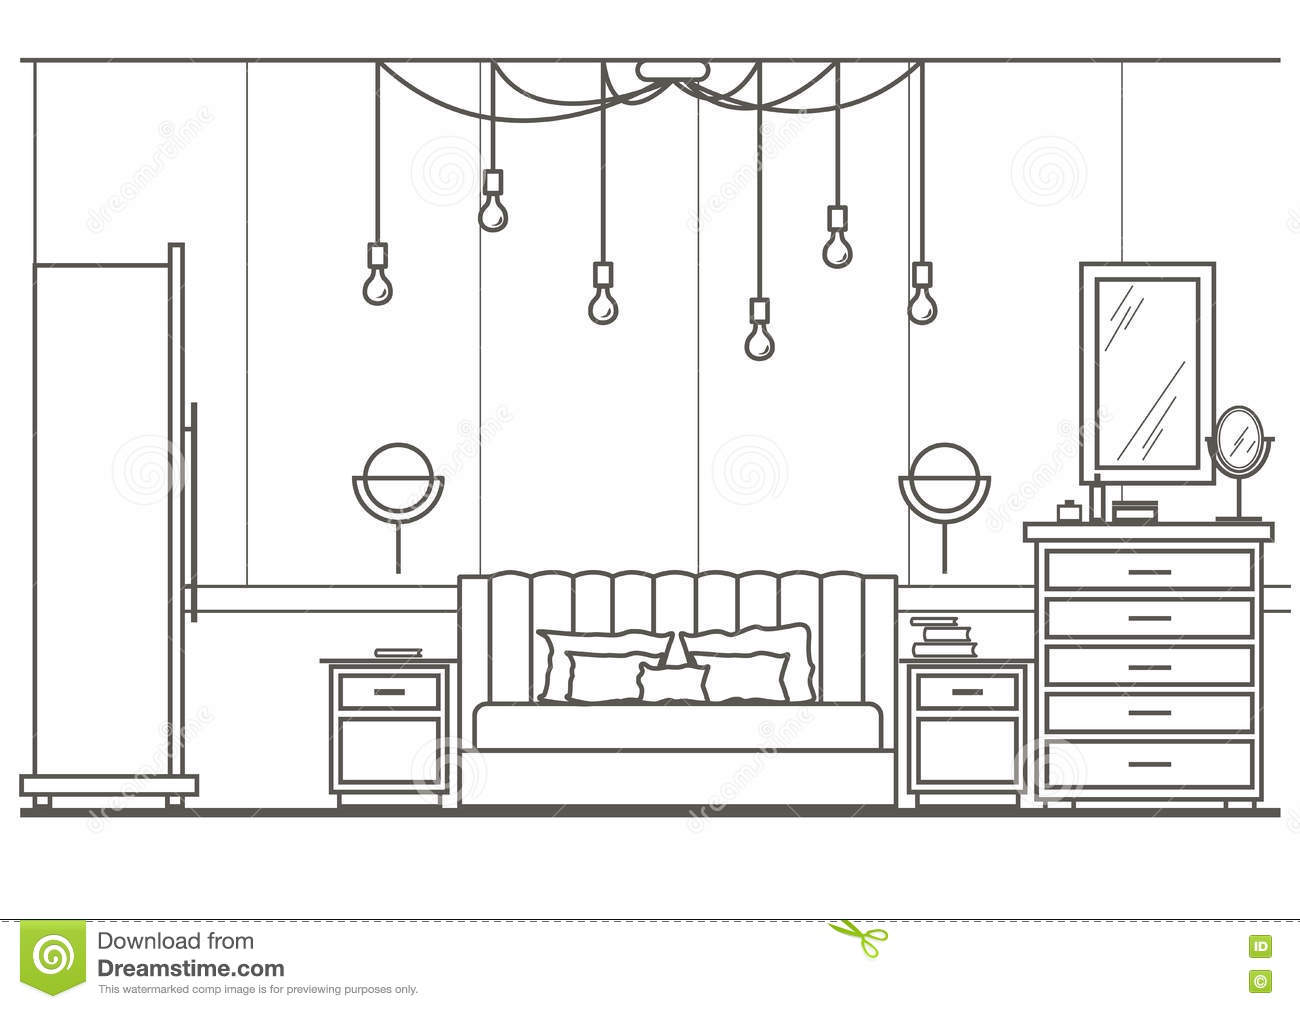 Architectural sketch interior modern bedroom front view stock vector